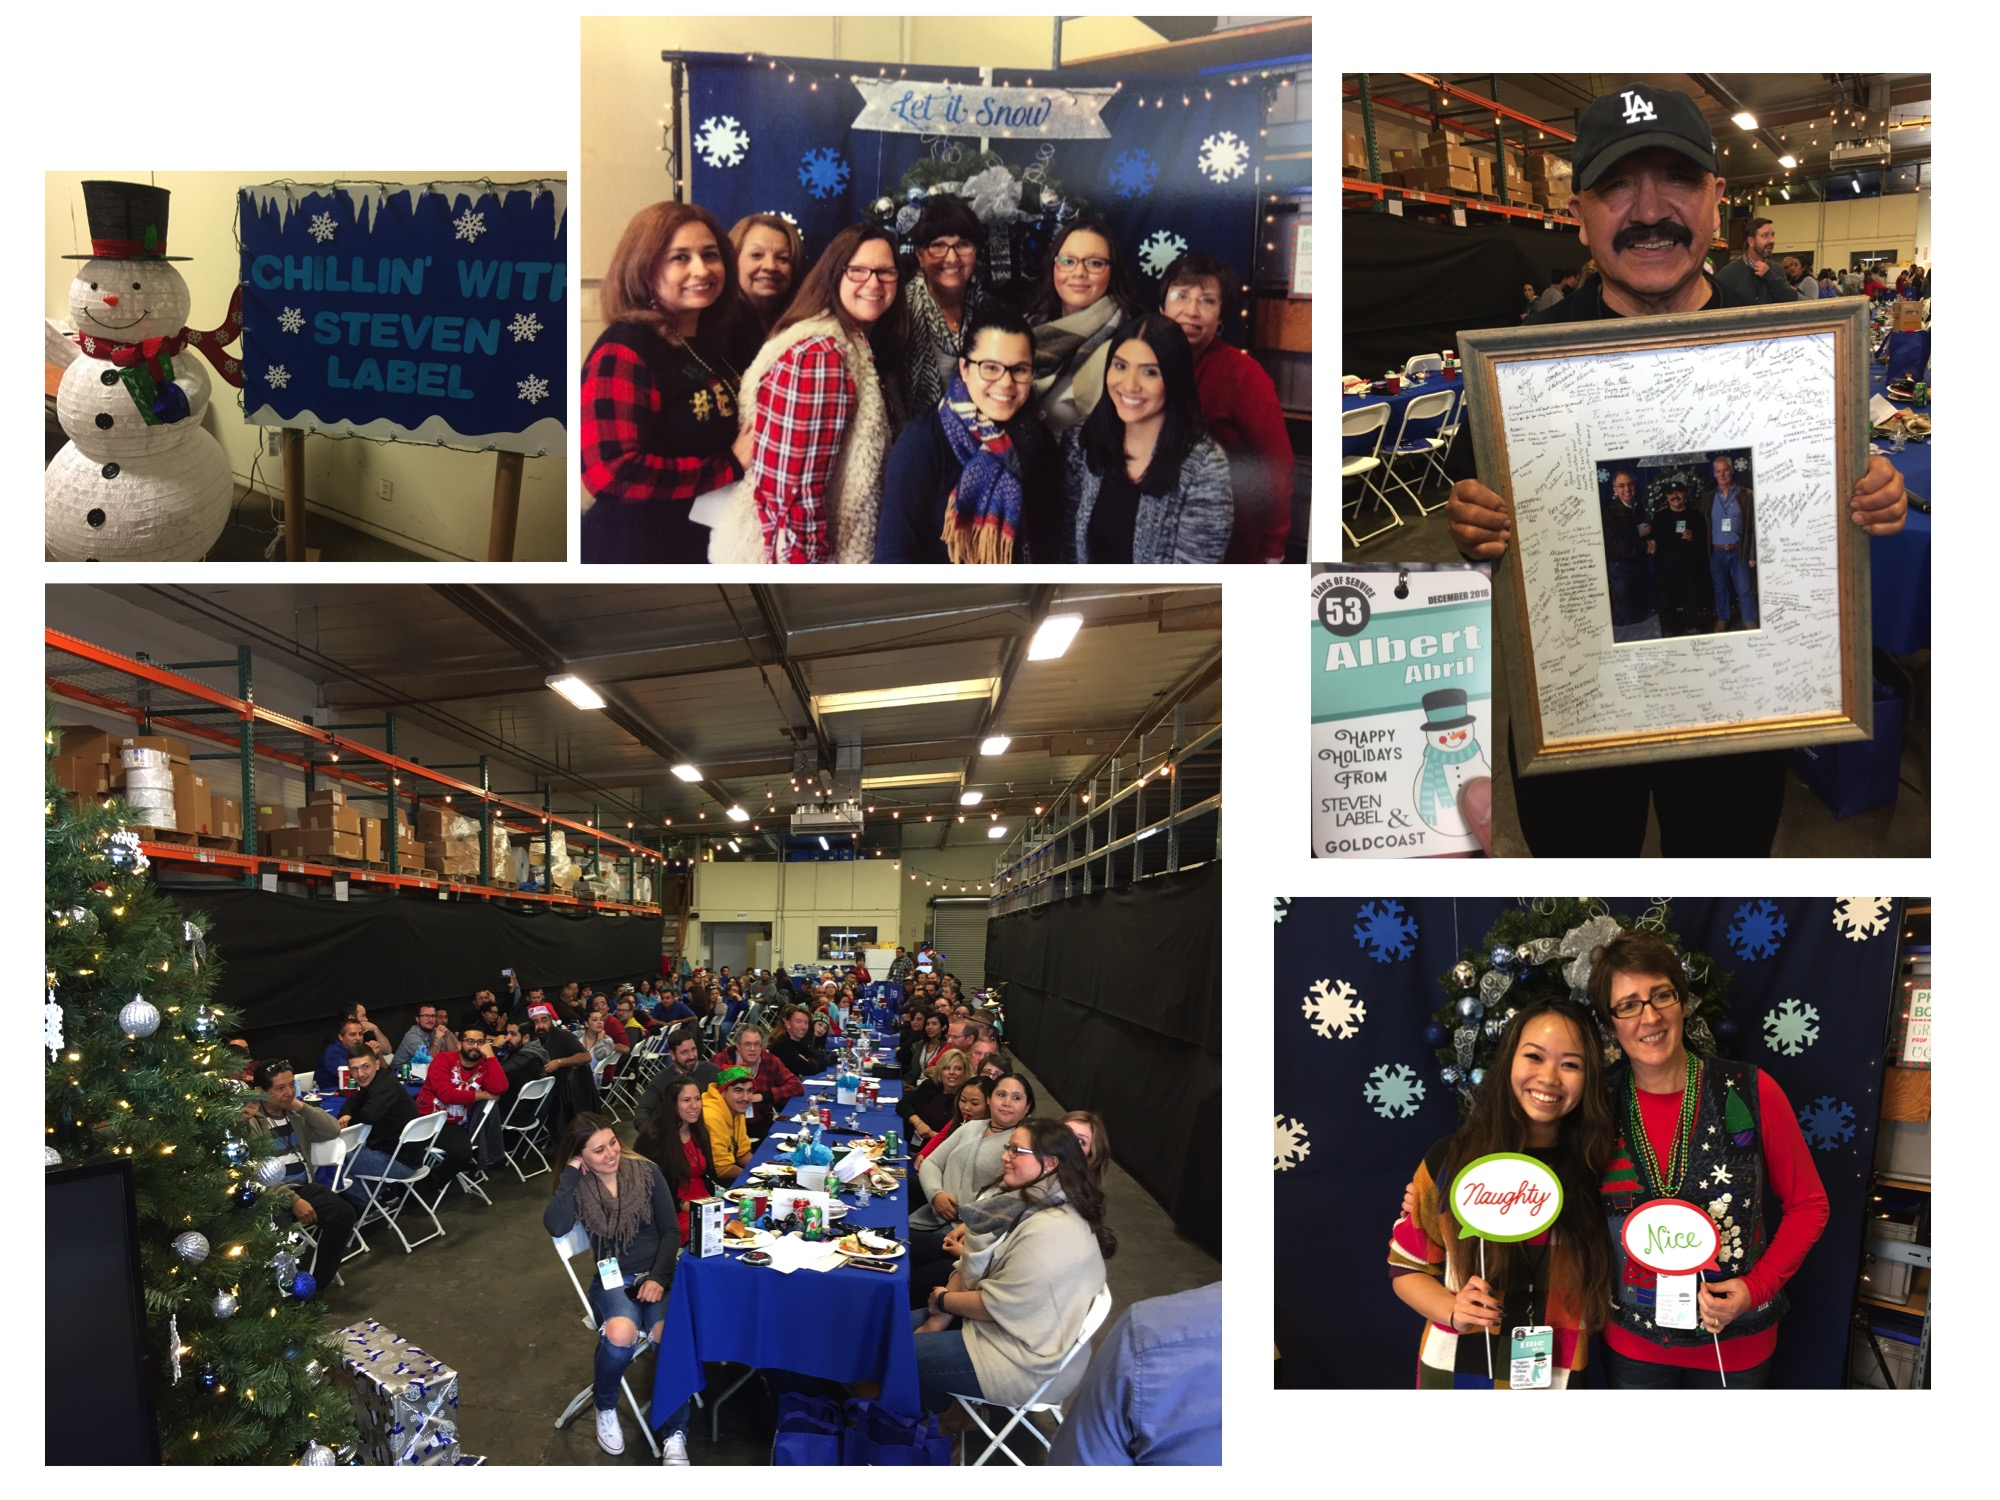 Steven Label / Gold Coast shares a Holiday meal together